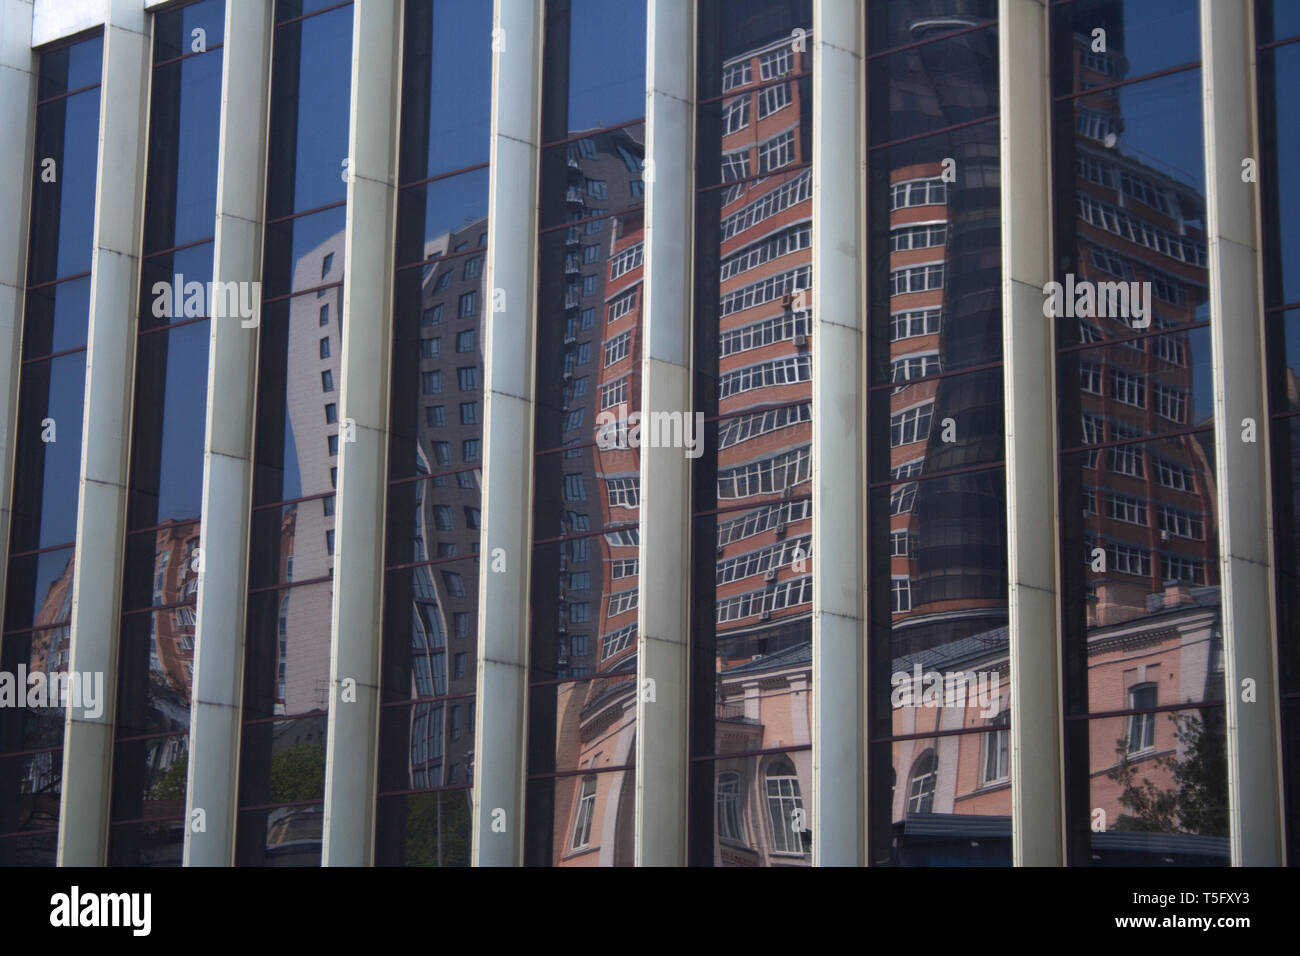 Cityscape reflection on building striped glass wall with distortion effect in downtown district on a spring day - Stock Image